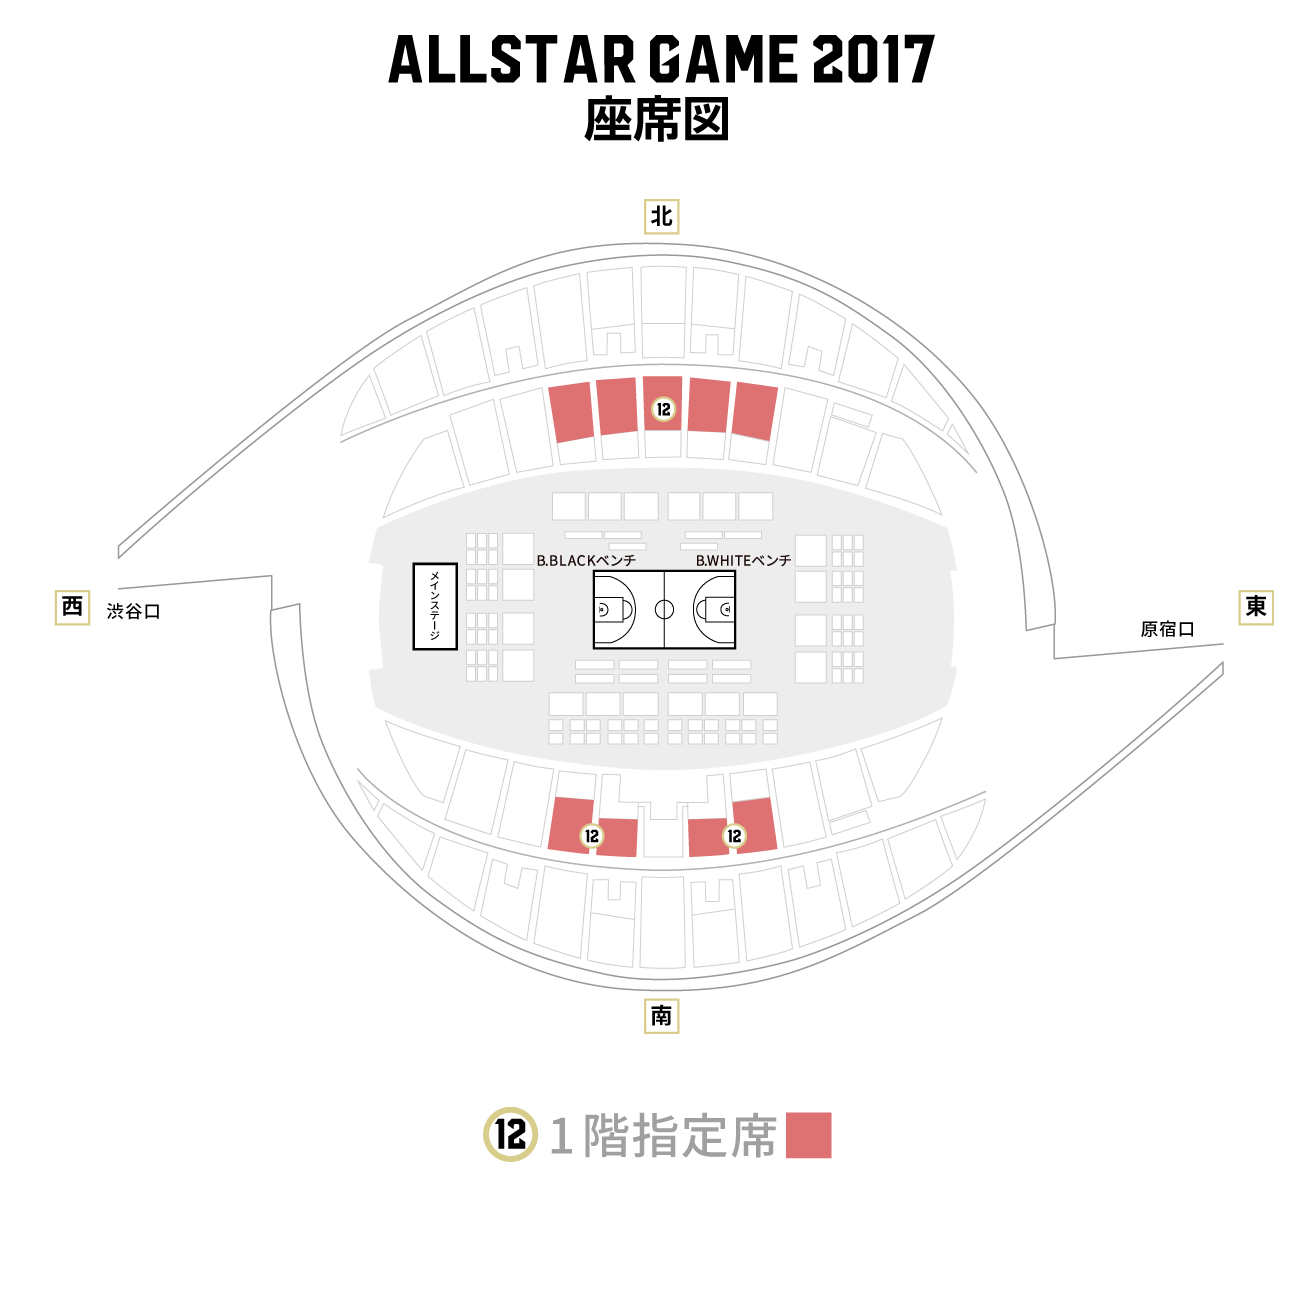 seatview_seat_12.png